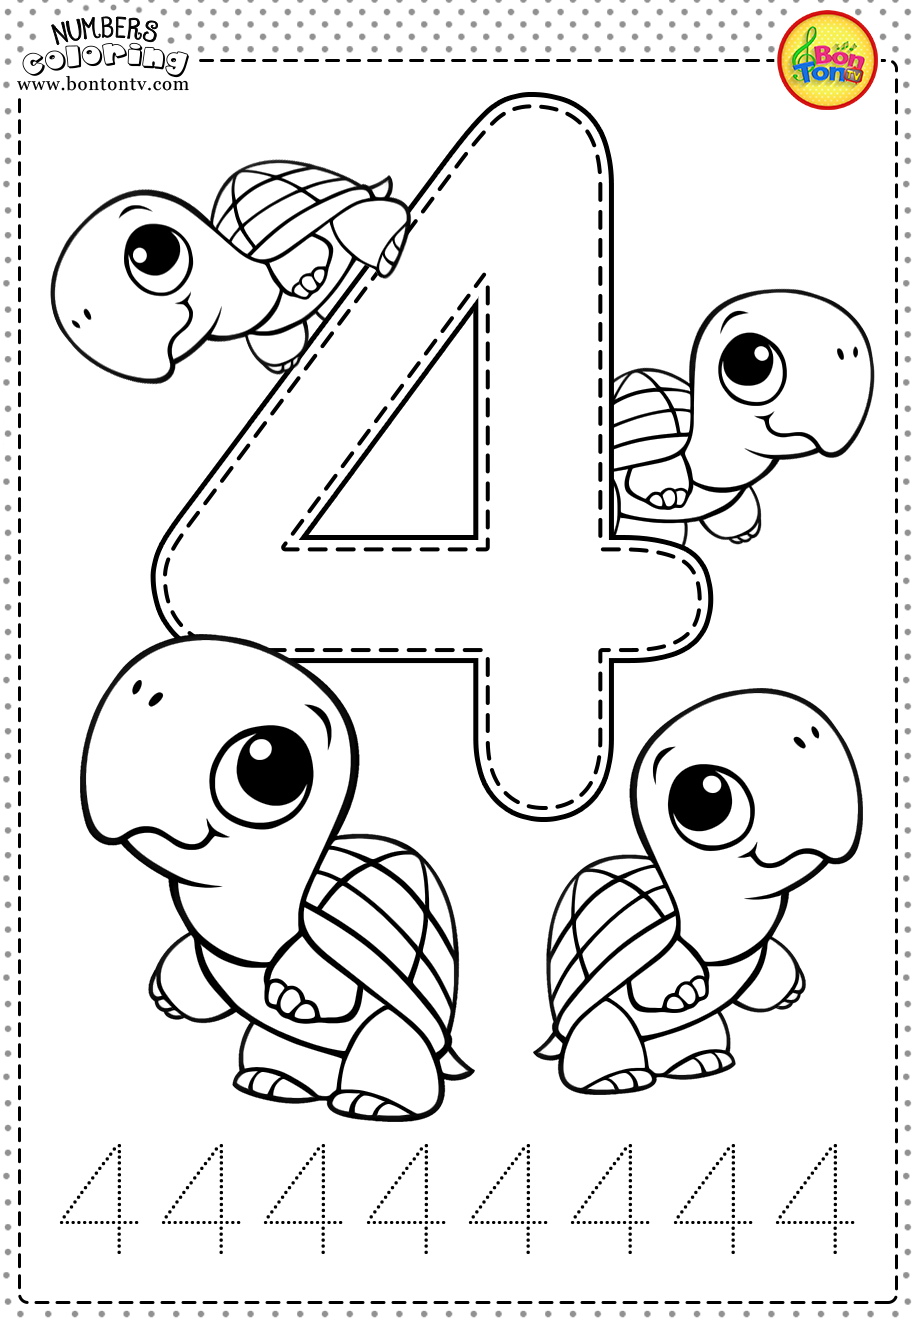 coloring number 4 preschool number 4 coloring page getcoloringpagescom coloring preschool number 4